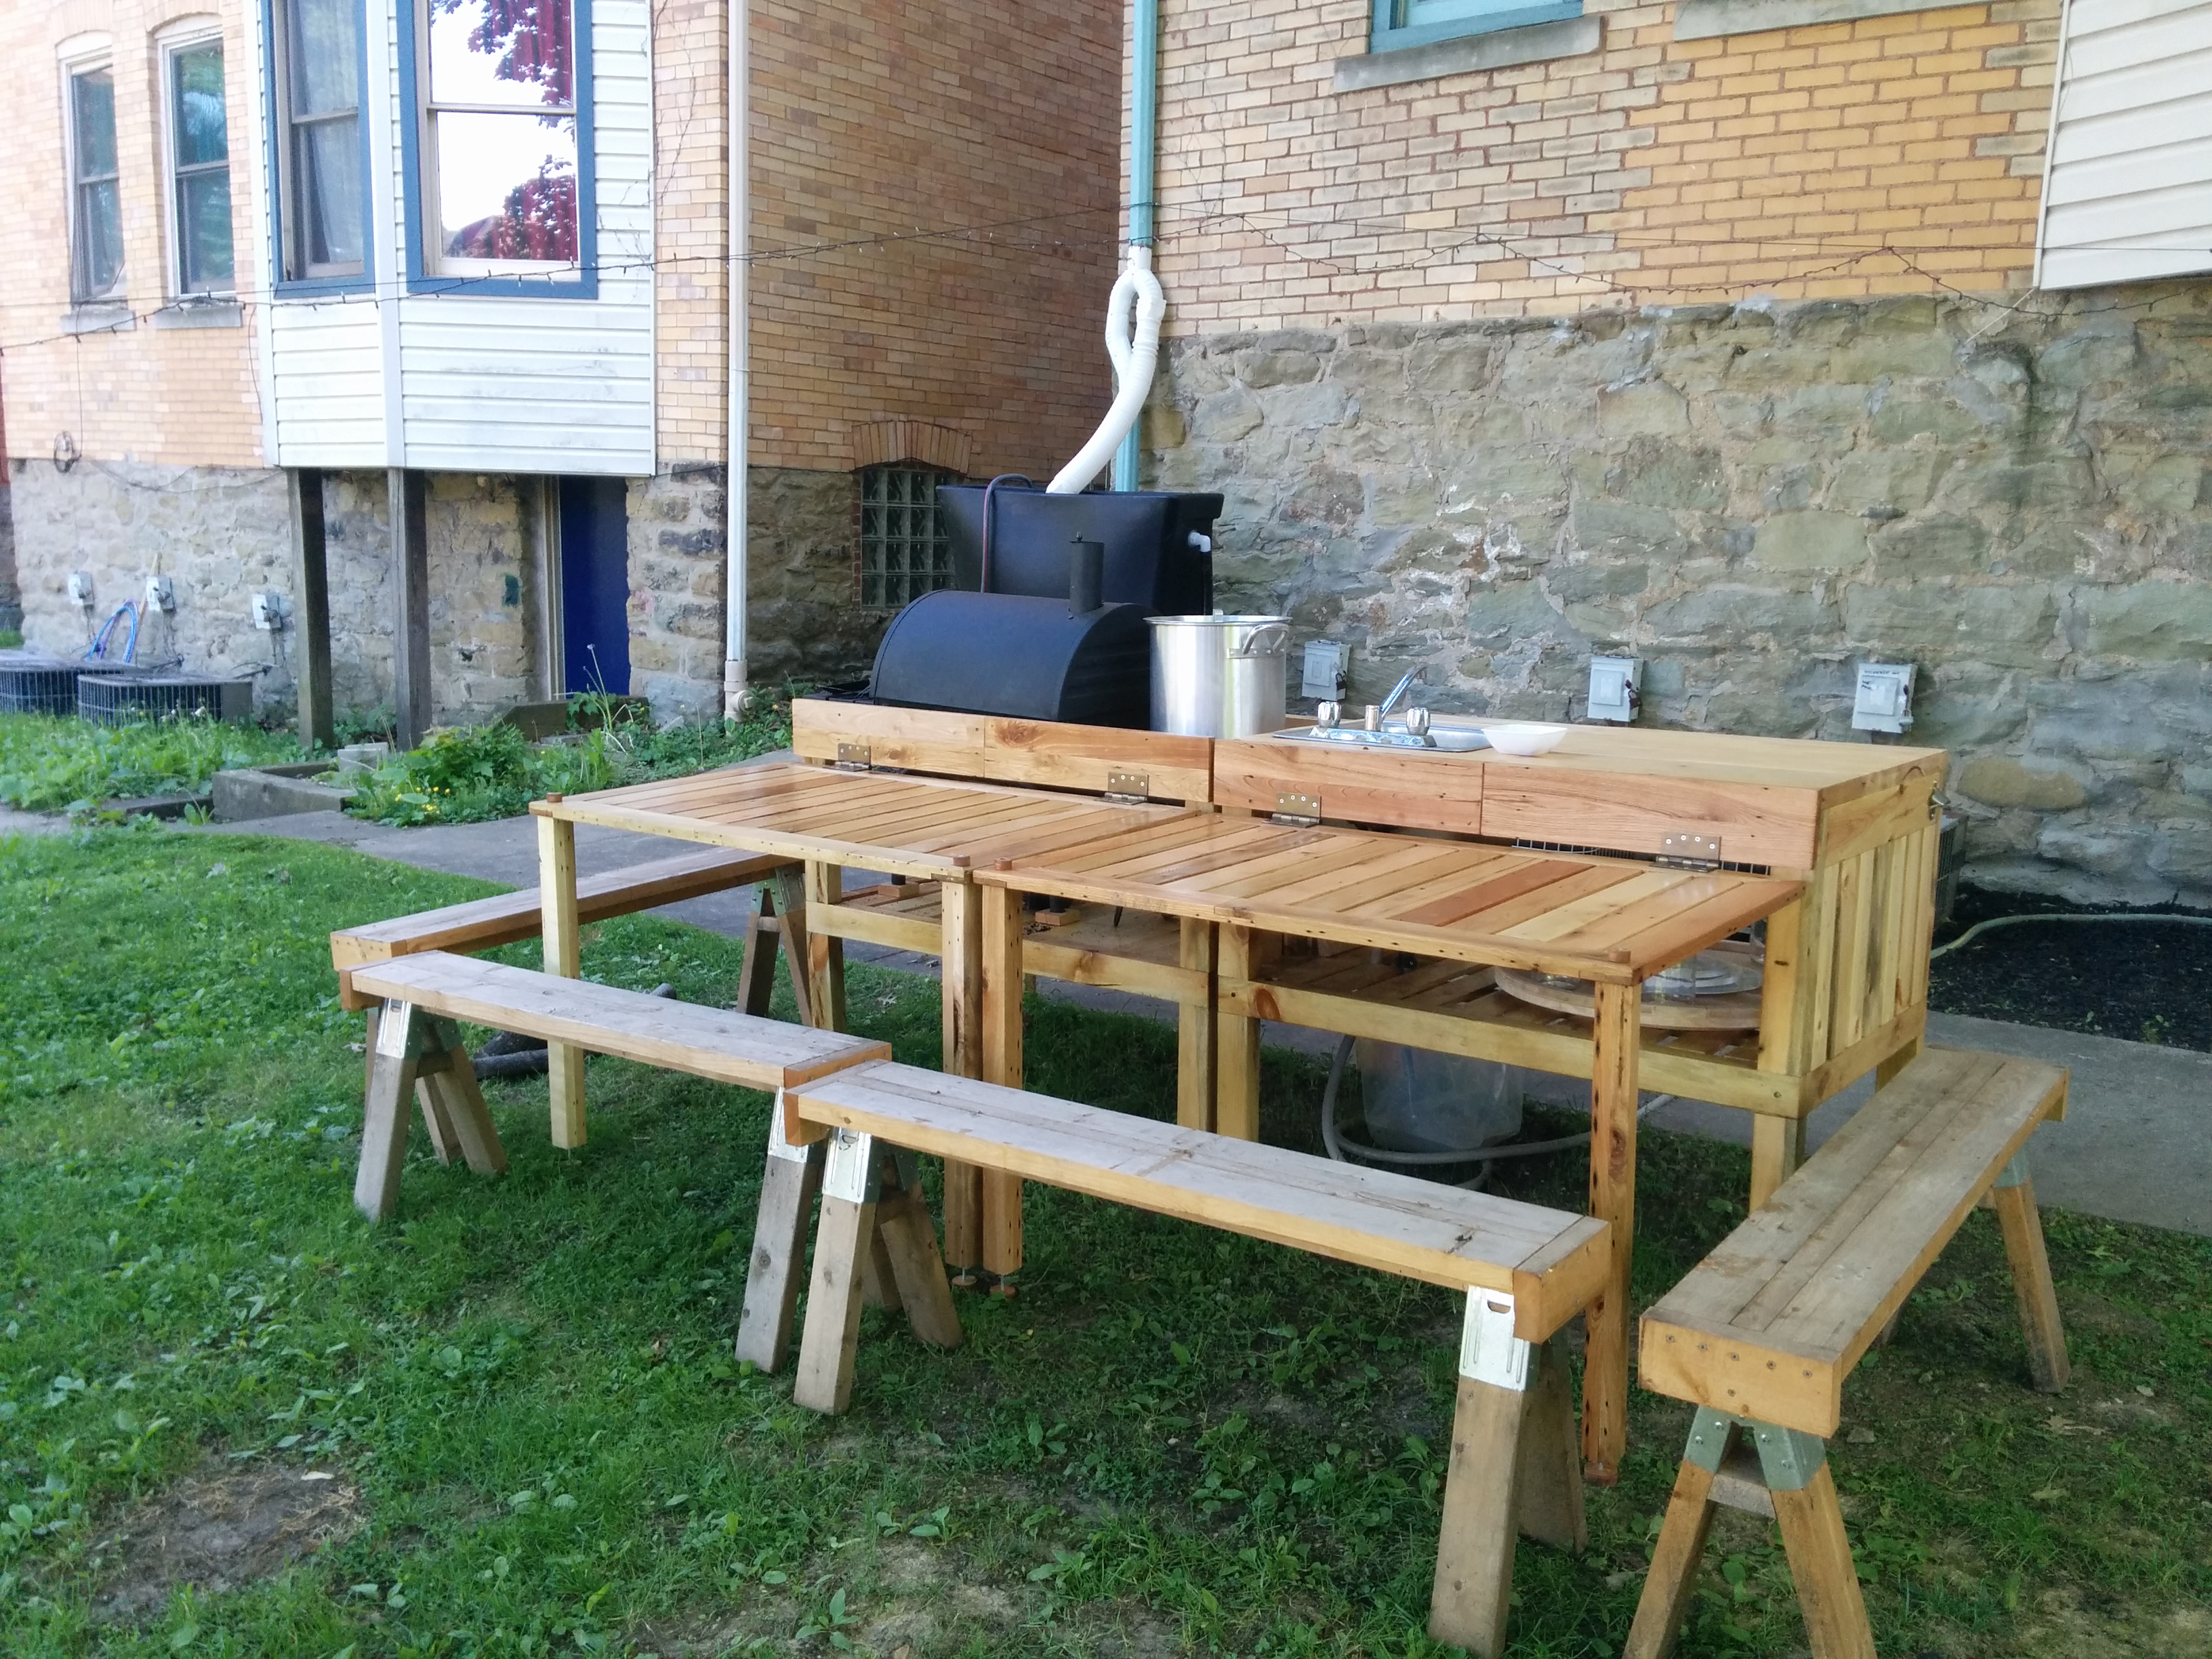 Picture of Backyard Kitchen Made From Reclaimed Materials